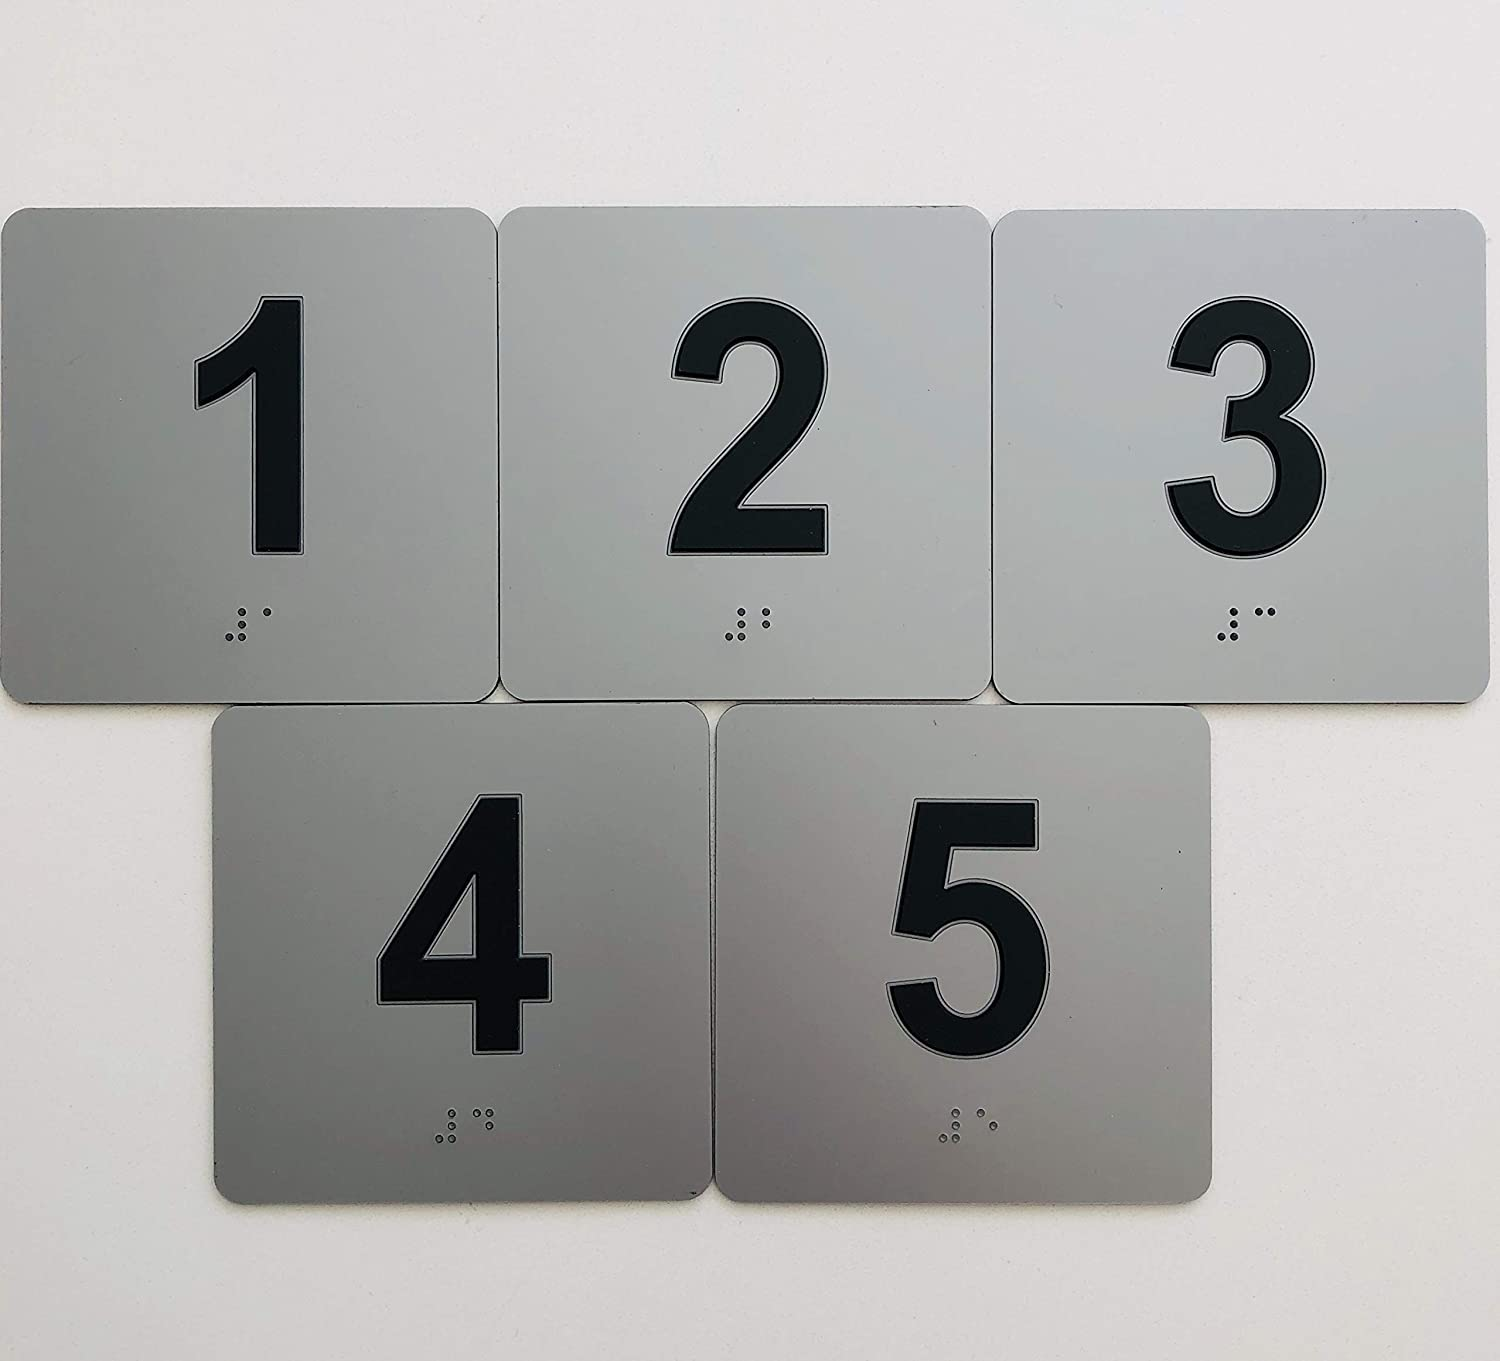 Exam Room/Office Sign Numbers (1-5) w/Braille, ADA Compliant, Easy Mounting (Black/Gray)